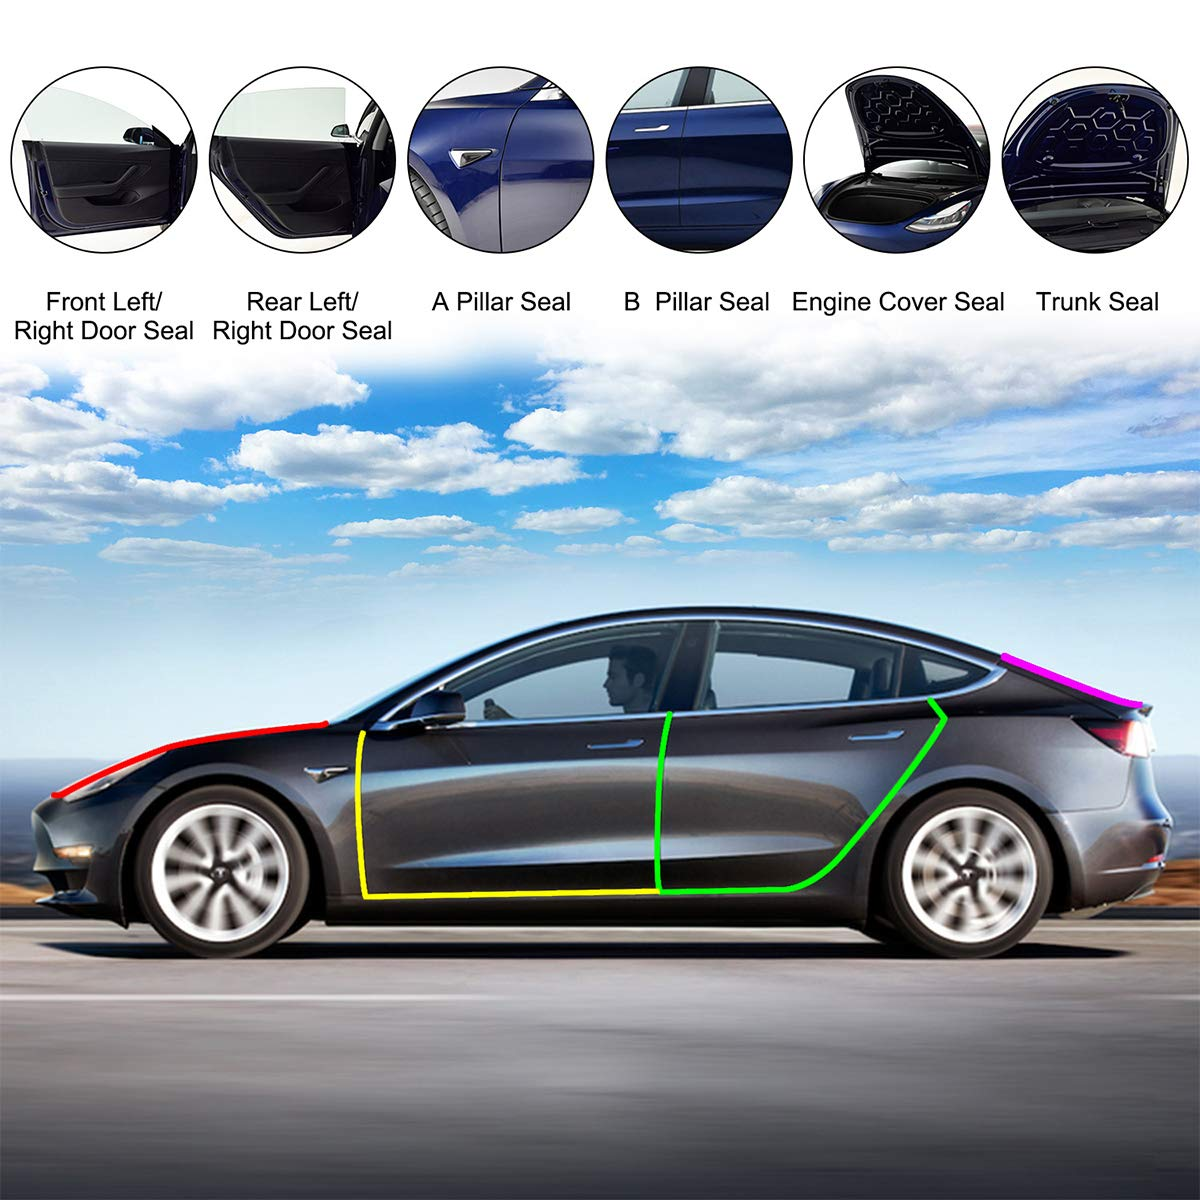 Manfiter Tesla Model 3 Door Seal Kit Tesla Model 3 Accessories Model 3 Noise Reduction Kit Soundproof Weather Seal Strip for Tesla Model 3 Black 6 Pack